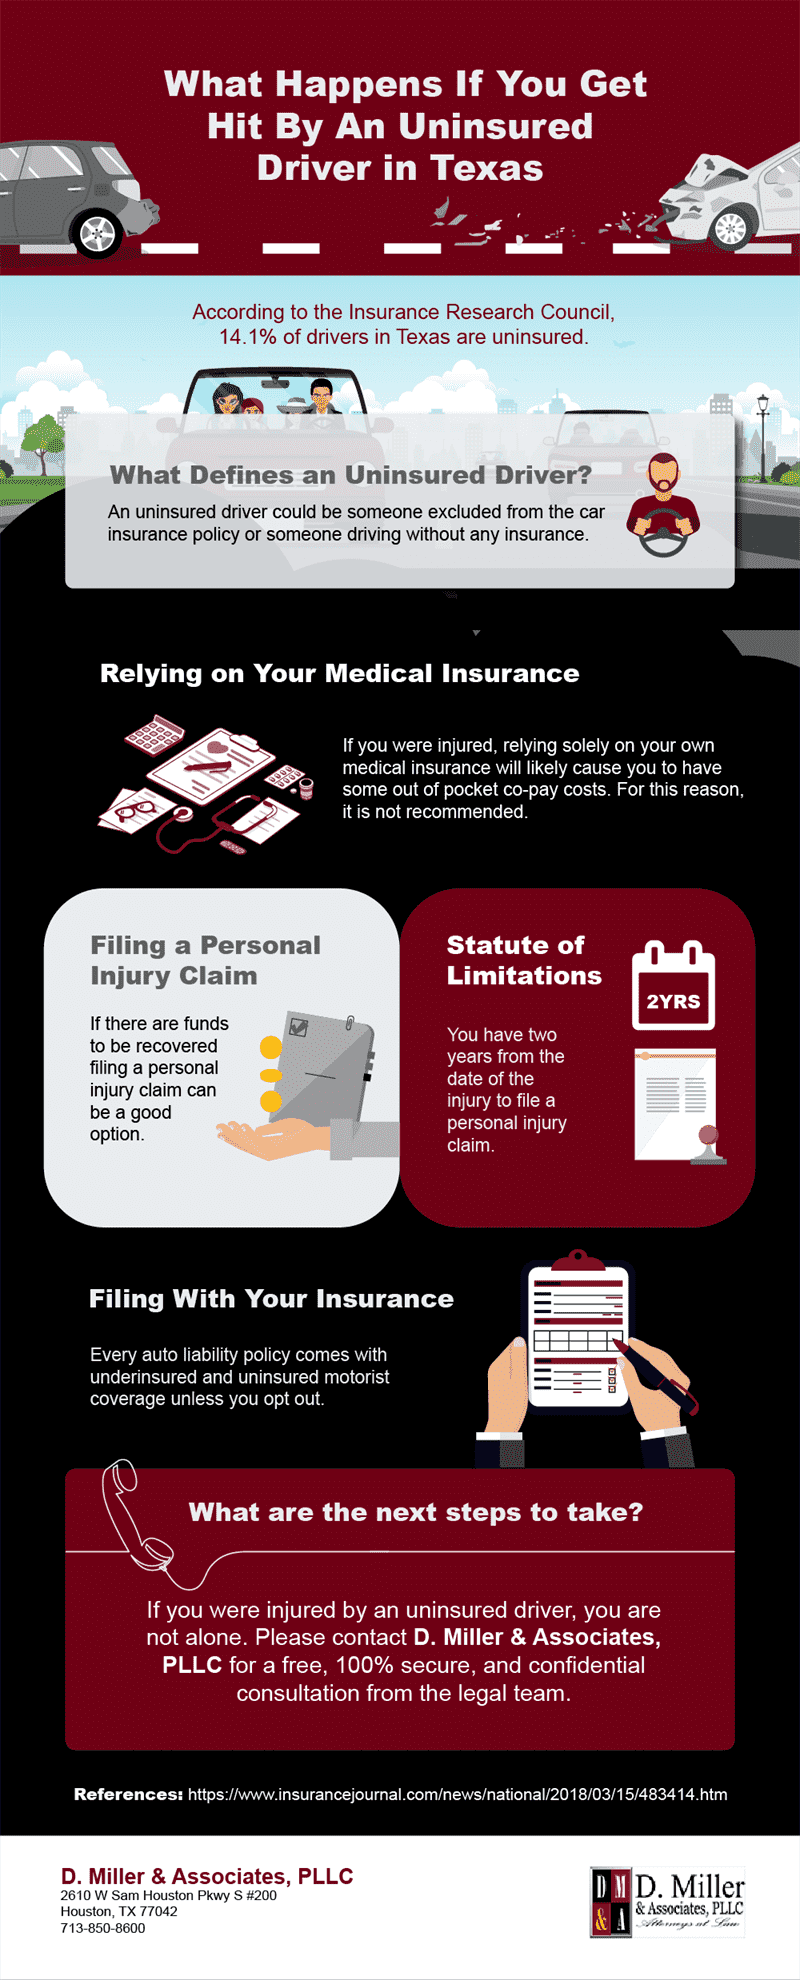 What Happens If You Get Hit By An Uninsured Driver In Texas